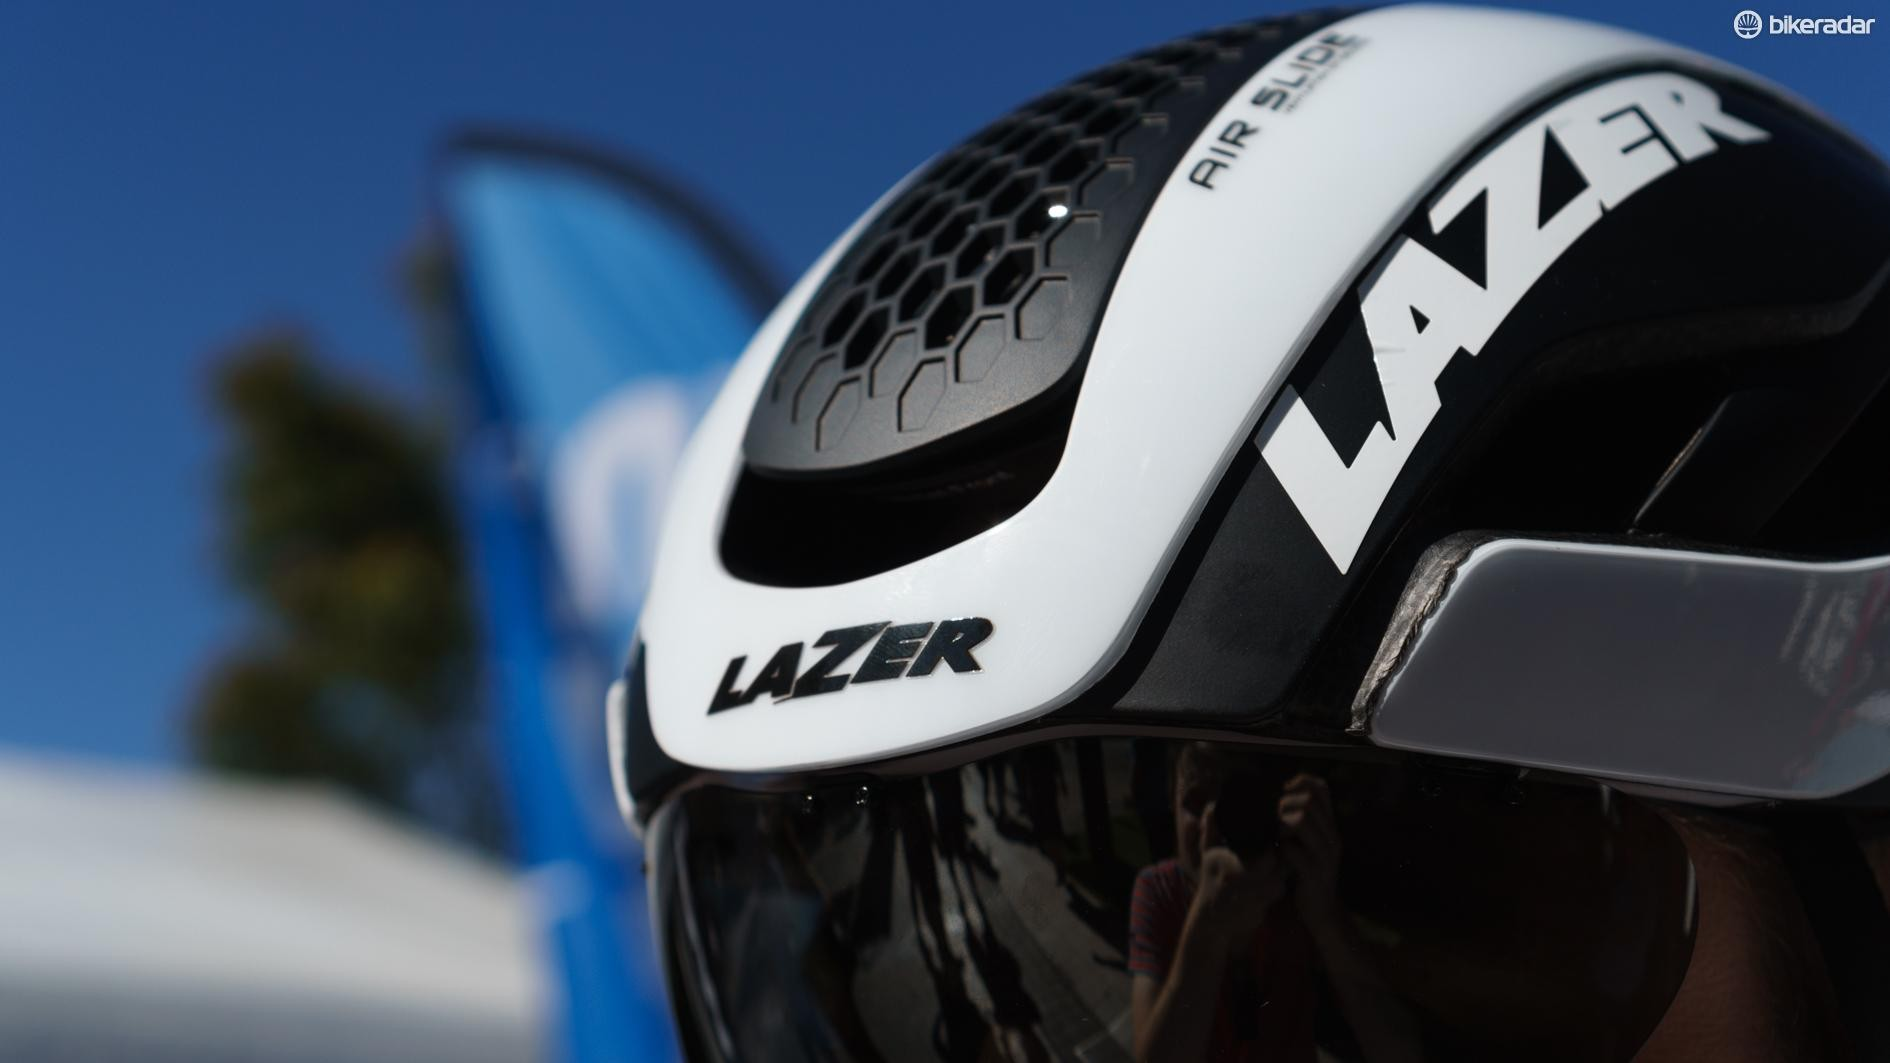 The new helmet retains the adjustable front main vent of the old model